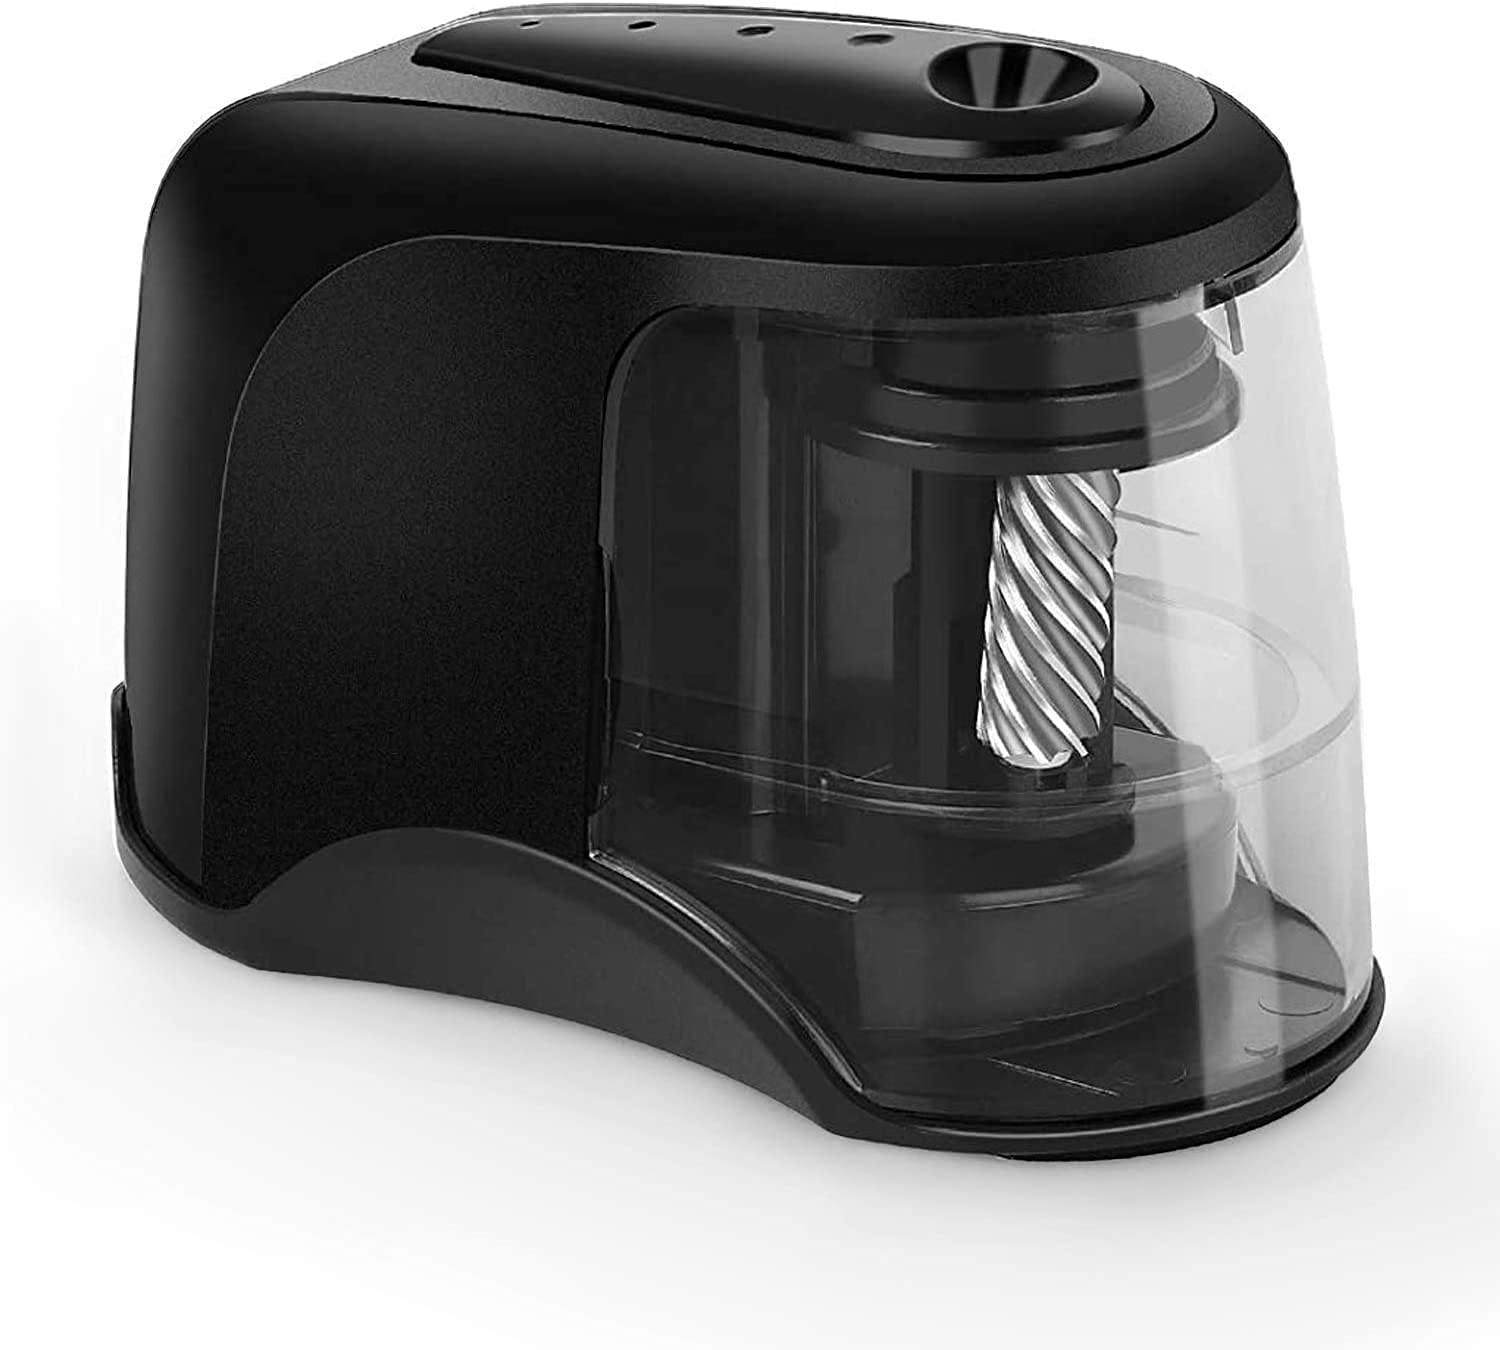 Electric Pencil Sharpener, Heavy-Duty Helical Blade to Fast Sharpen, Pencil Sharpeners for USB/Battery Operated, Suitable for No.2/Colored Pencils(6-8mm)/Classroom/Home/Office - Black : Office Products